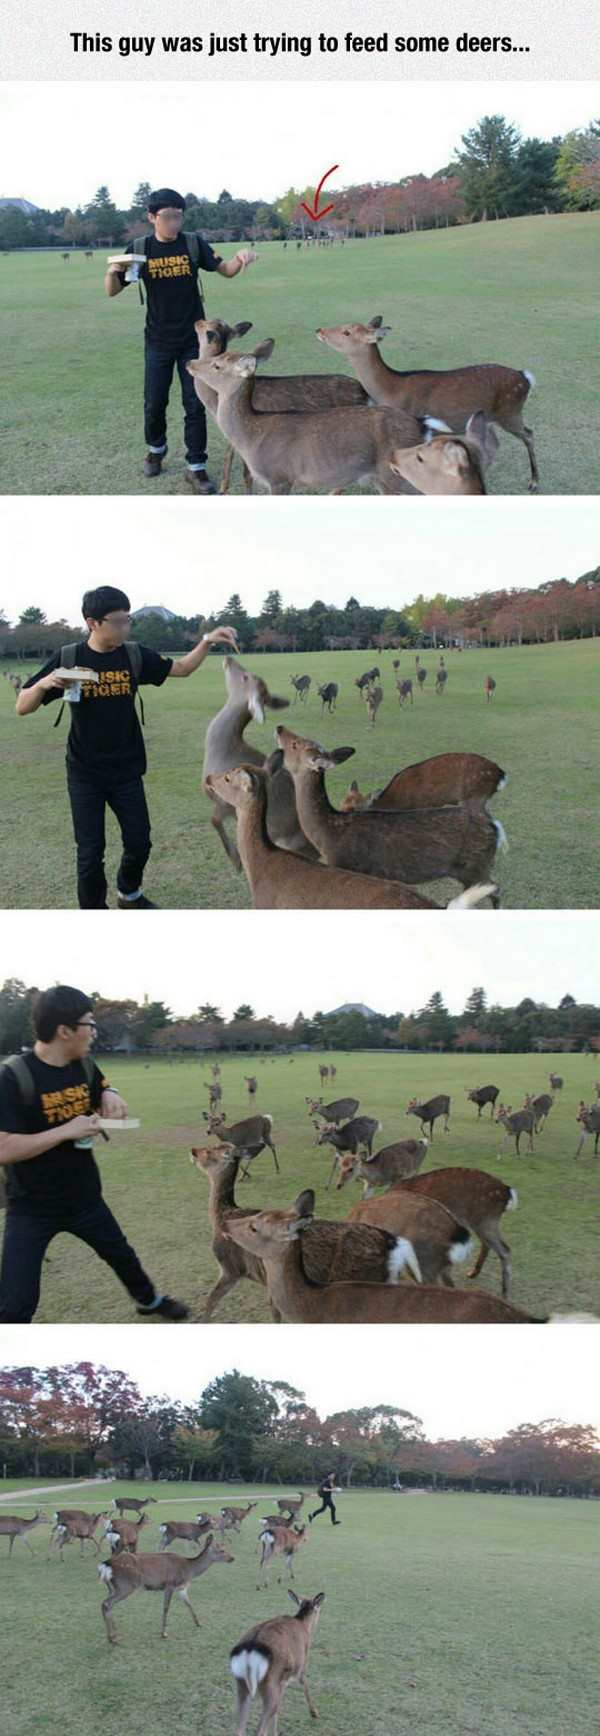 funny picture of guy feeding deer